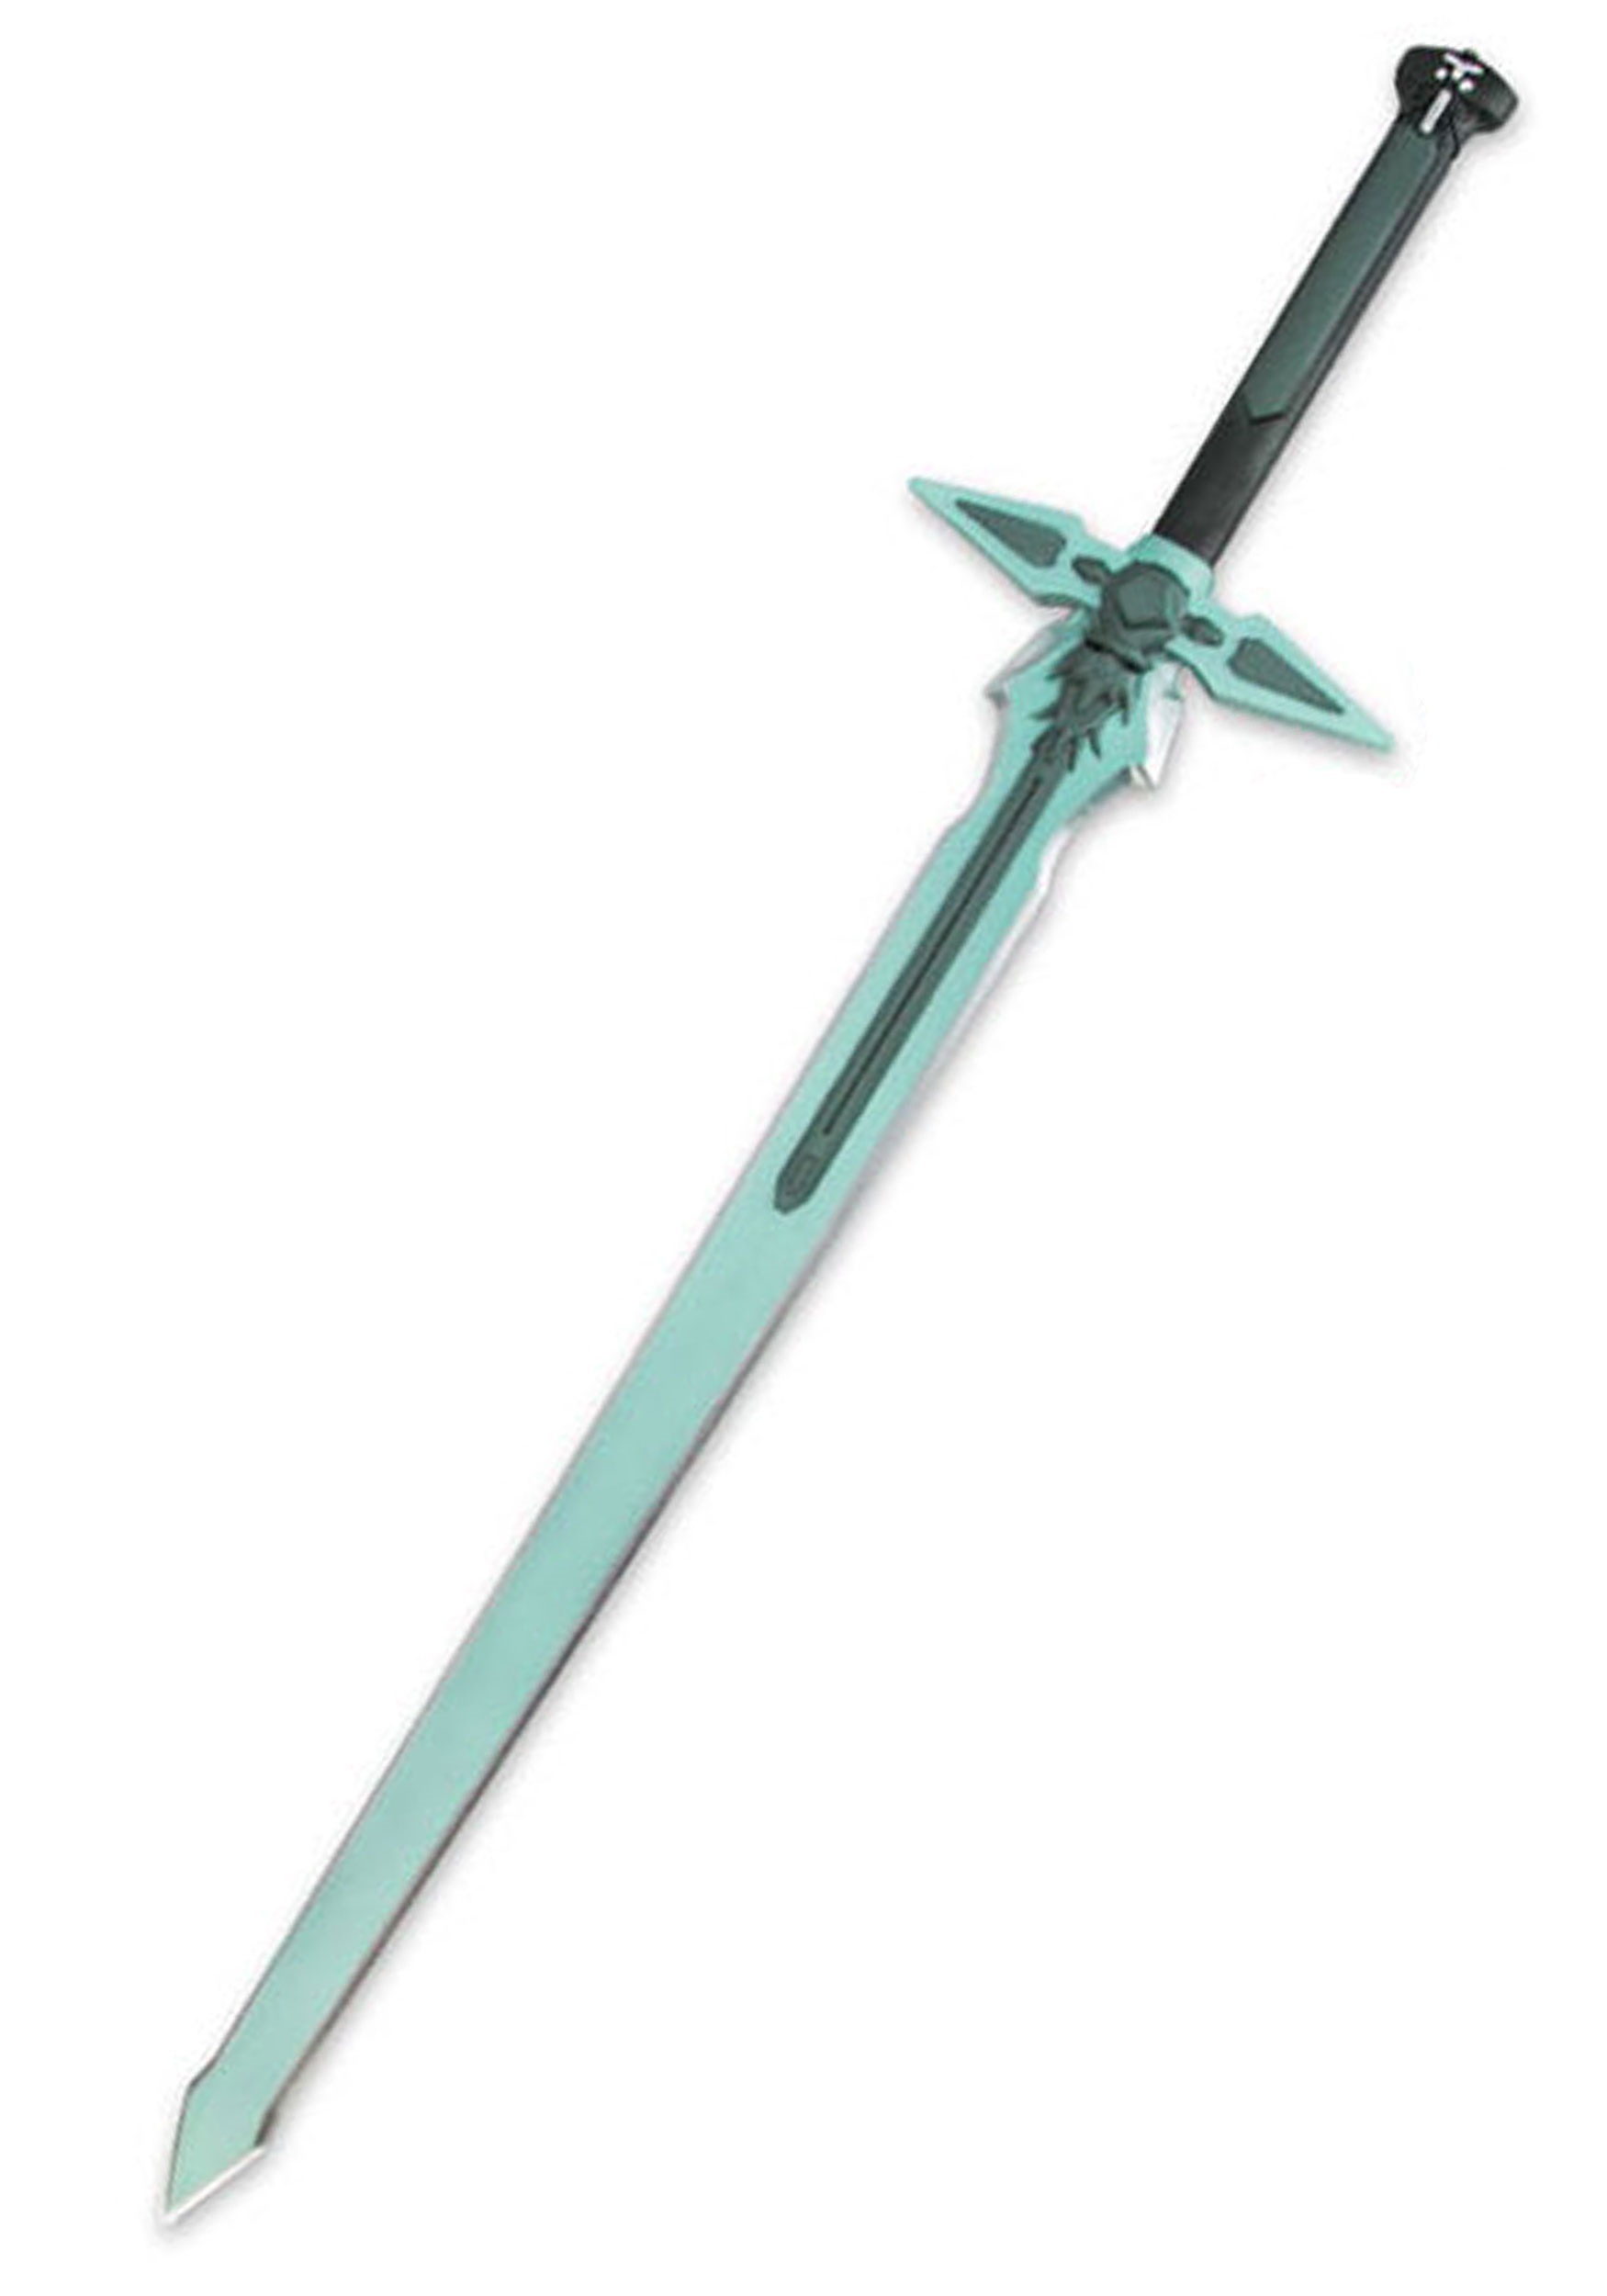 Sword Art Online Dark Repulser Foam Sword